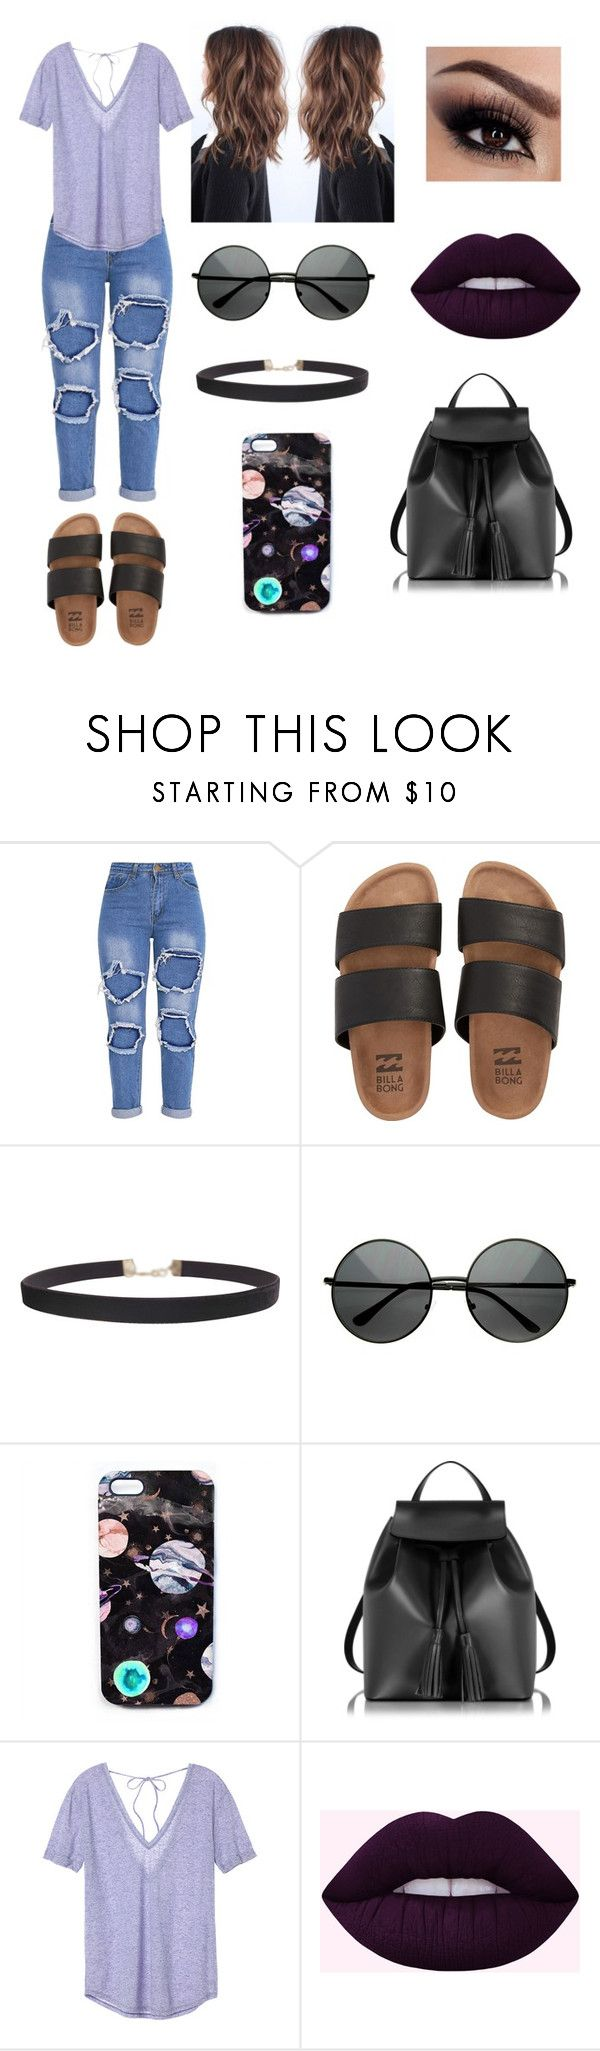 """""""Untitled #70"""" by maria2thrill ❤ liked on Polyvore featuring Billabong, Humble Chic, ZeroUV, Nikki Strange, Le Parmentier and Victoria's Secret"""